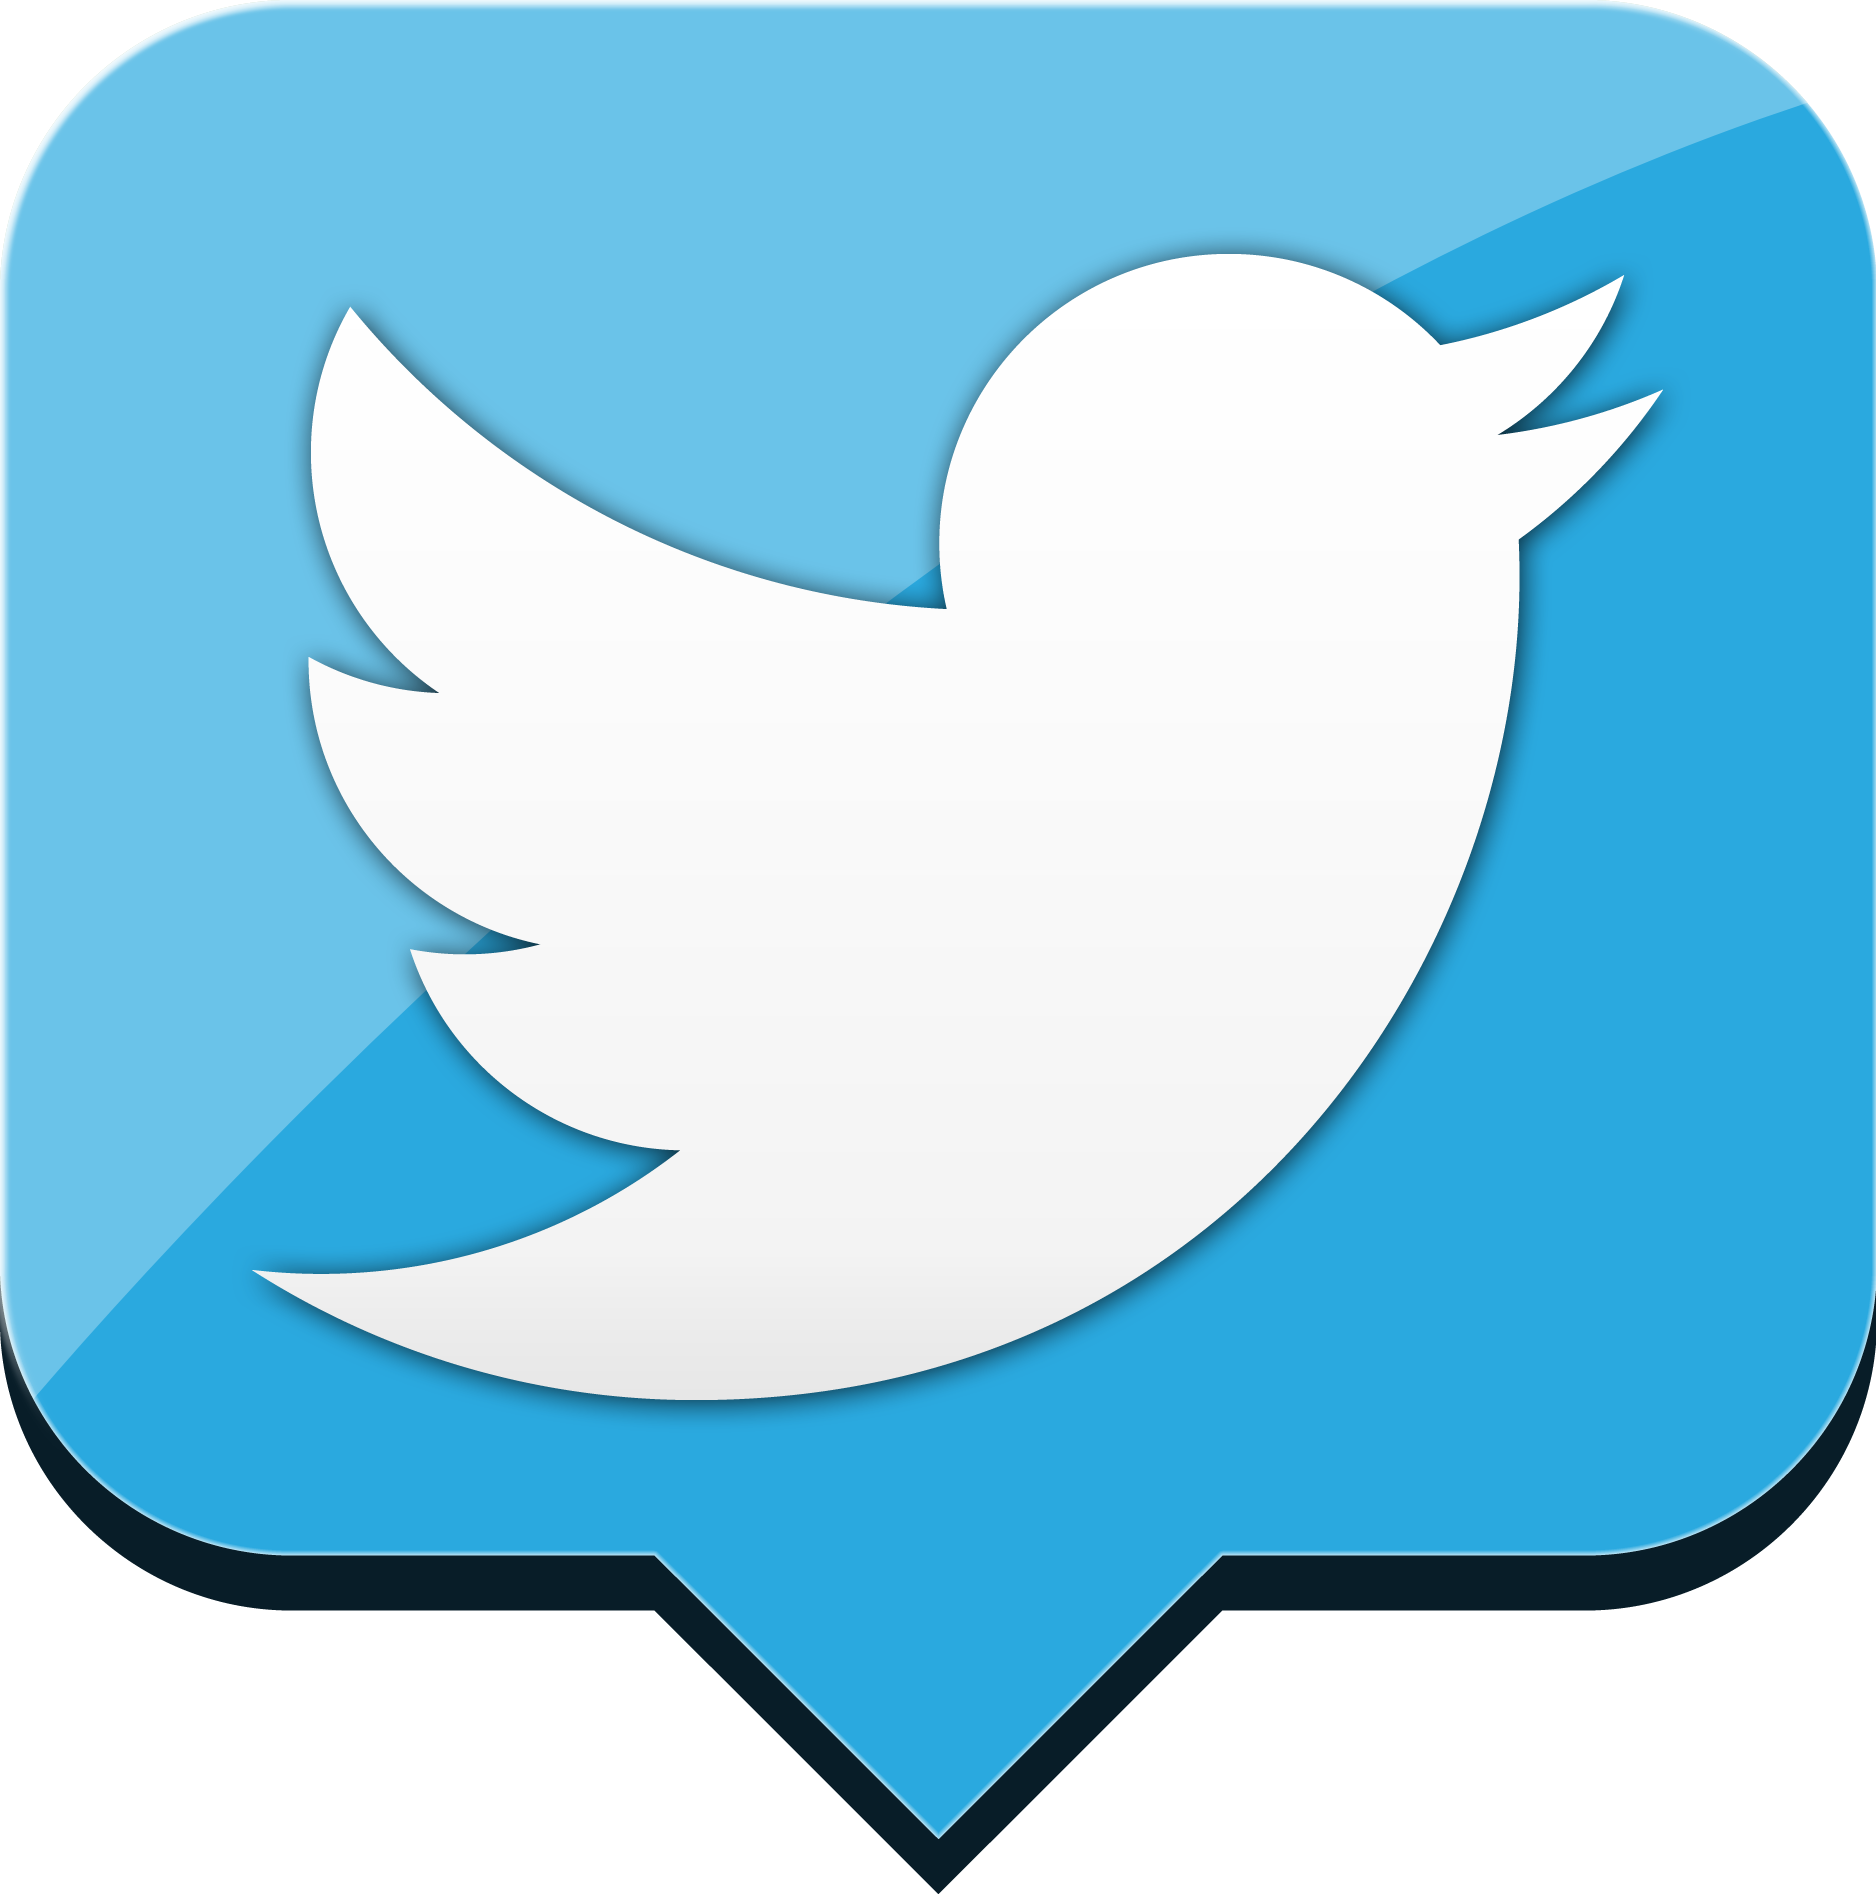 Twitter clipart name. Png transparent images all